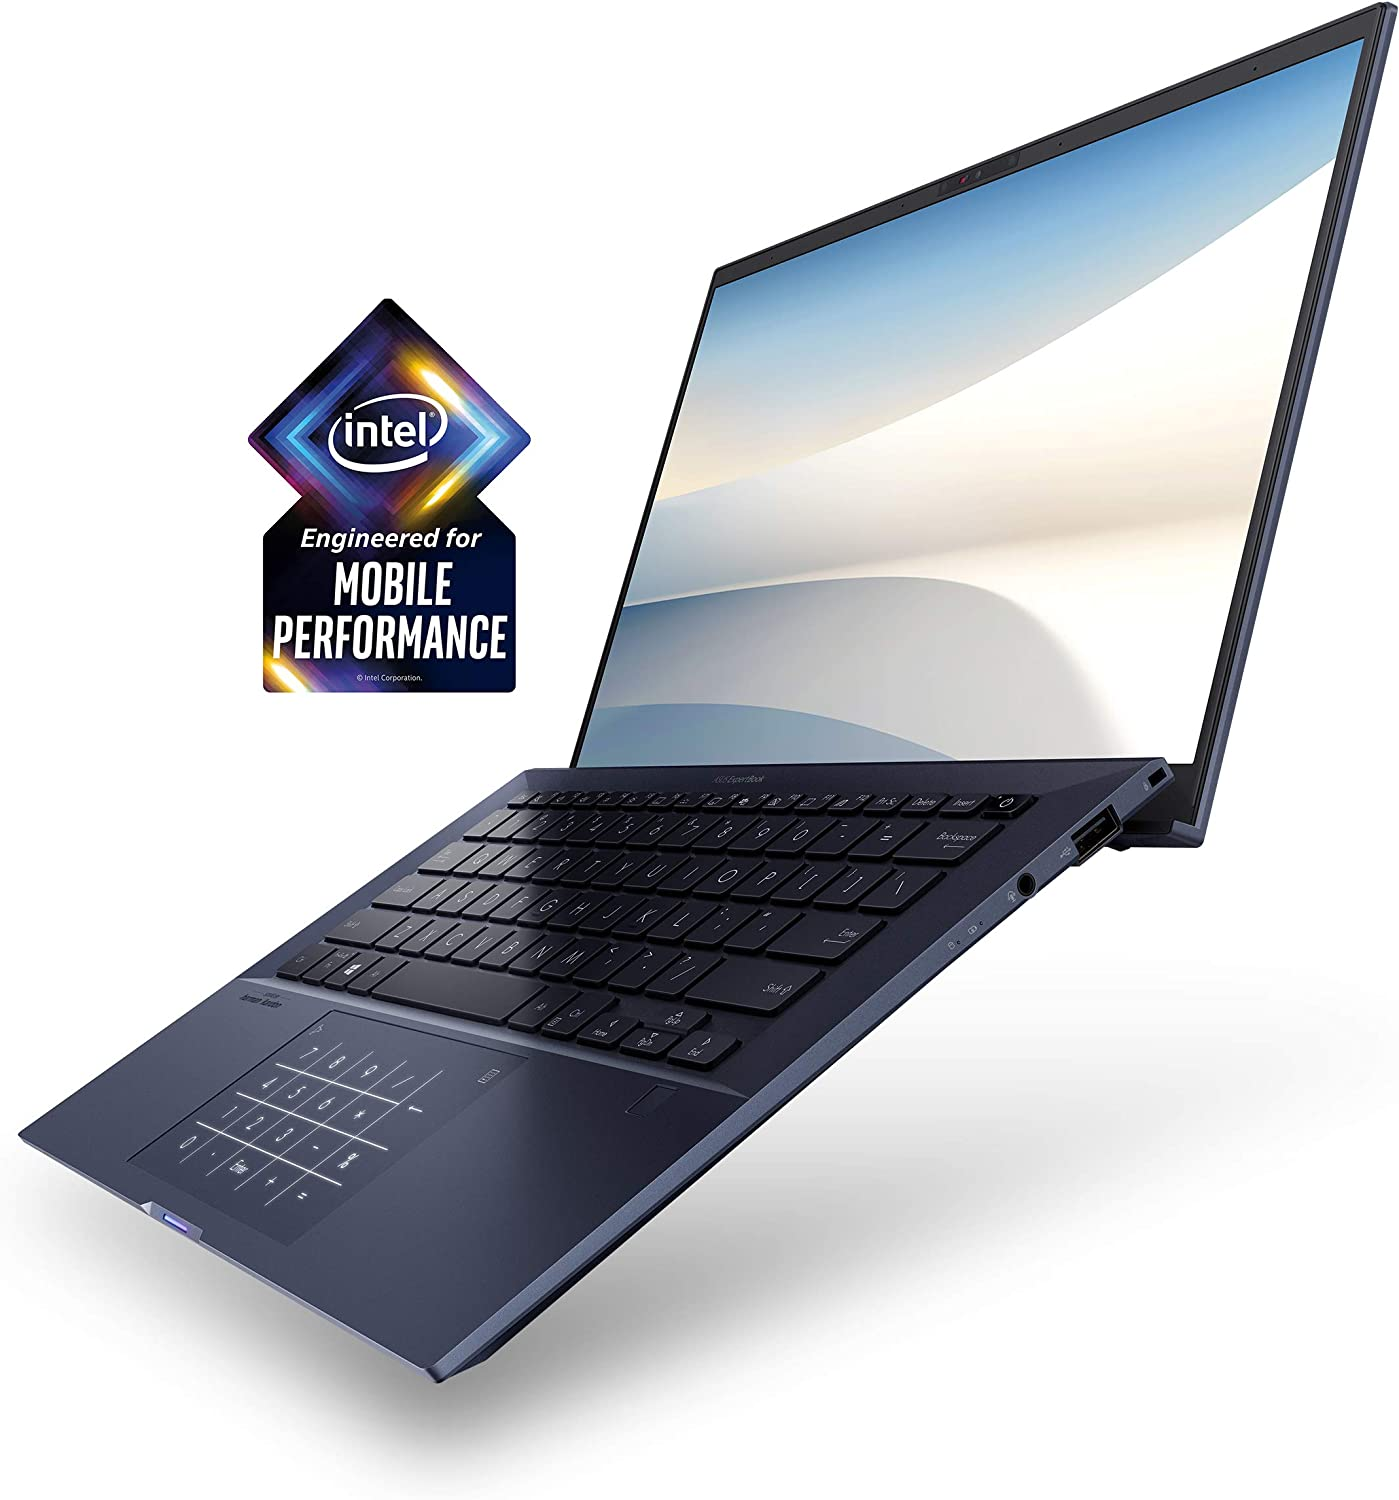 "ASUS ExpertBook B9450 Thin and Light Business-Laptop, 14"" FHD, Intel Core i7-10510U-Processor, 2X 1TB PCIe SSD, 16GB-RAM, Windows 10 Pro, Up to 24 Hrs-Battery Life,-Sleeve, B9450FA-XS79"